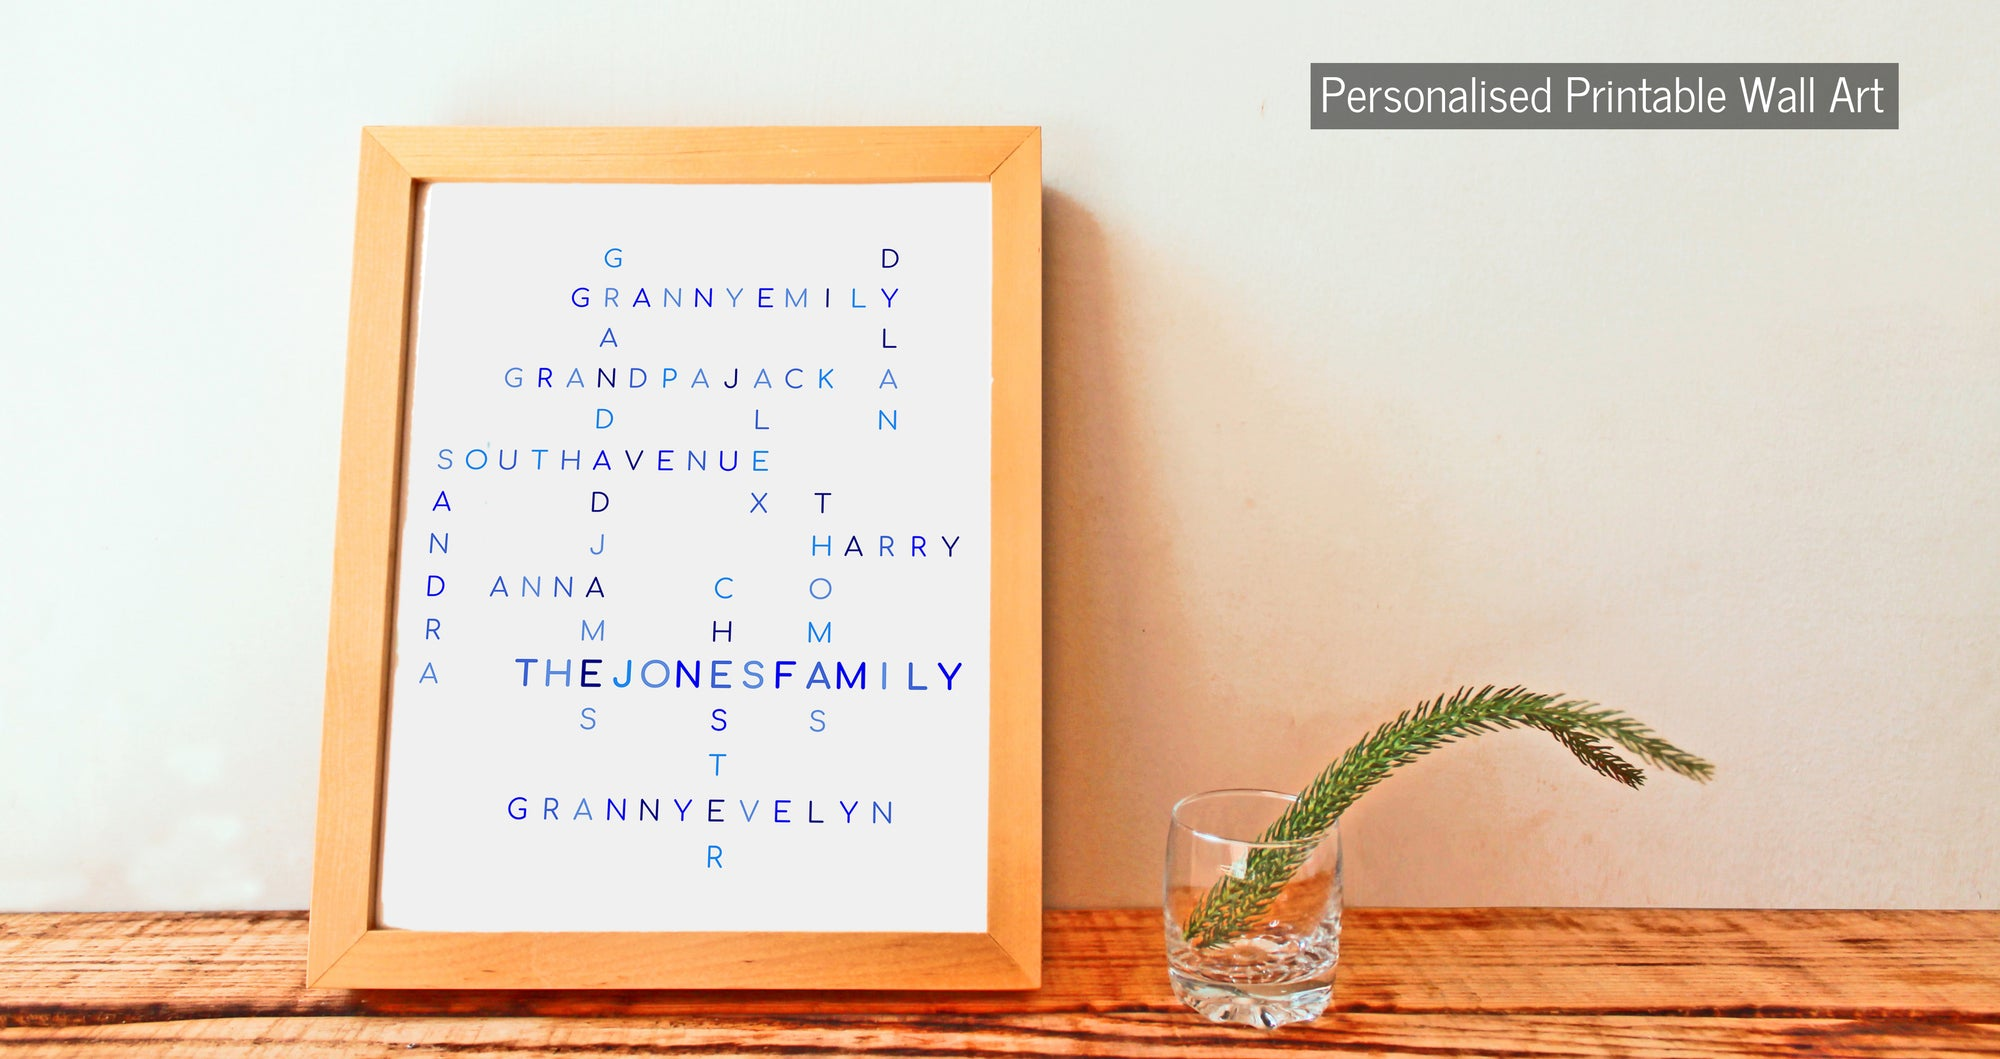 Personalised Printable Wall Art